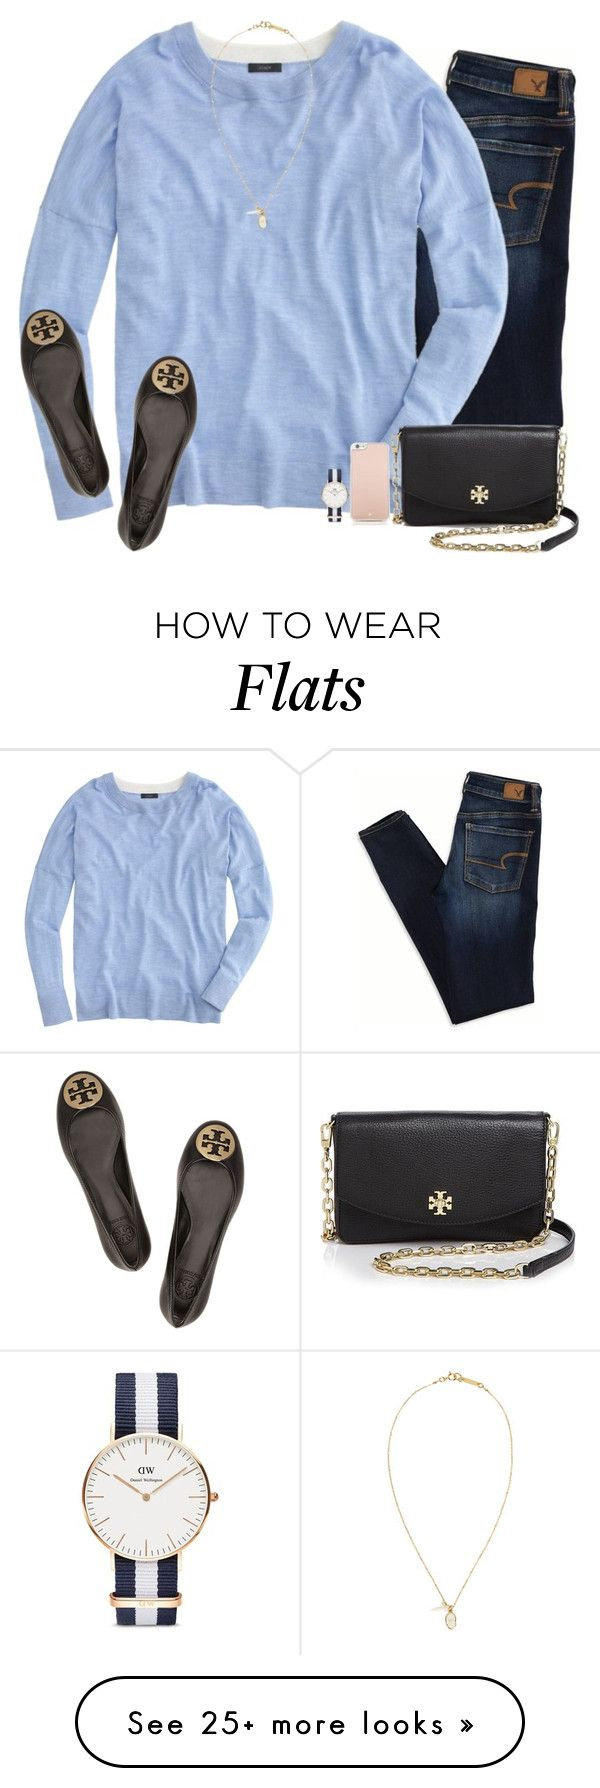 """""""A is for American Eagle jeans"""" by blakelyclairew on Polyvore featuring American Eagle Outfitters, J.Crew, Isabel Marant, Tory Burch, Kate Spade and Daniel Wellington"""